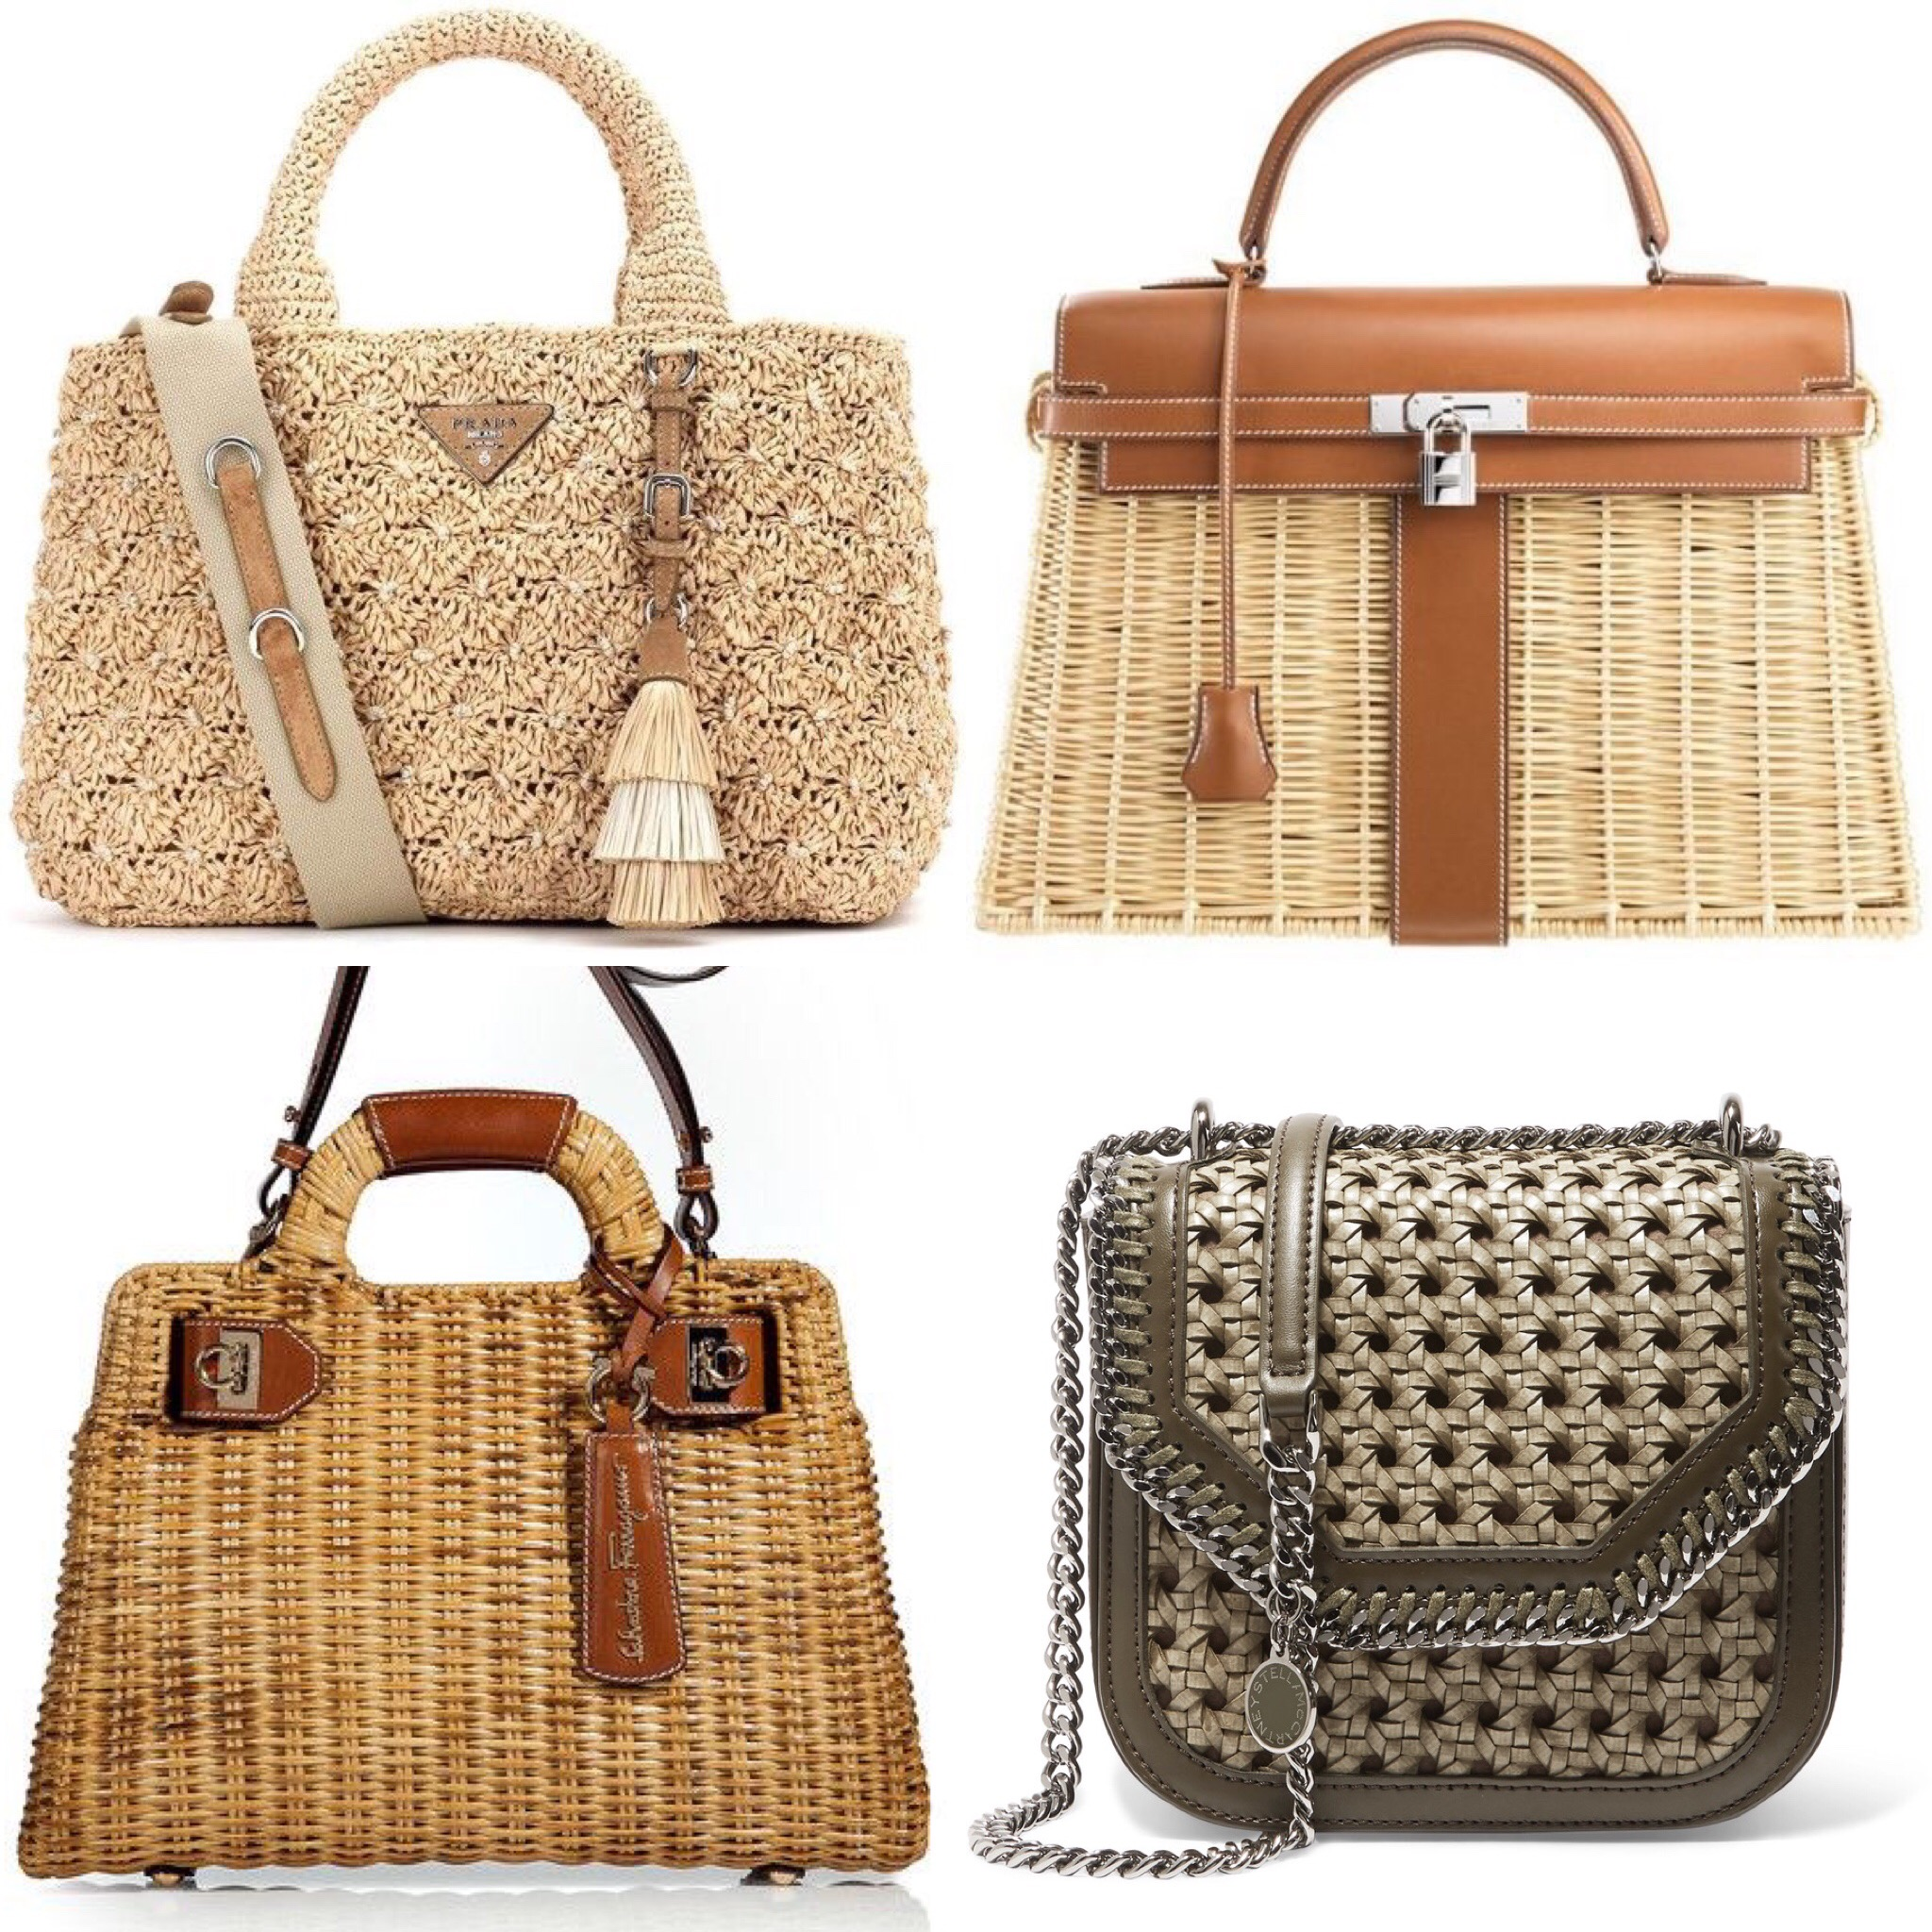 Vintage Or Contemporary The Straw Handbag Is Definitely A Timeless Charm